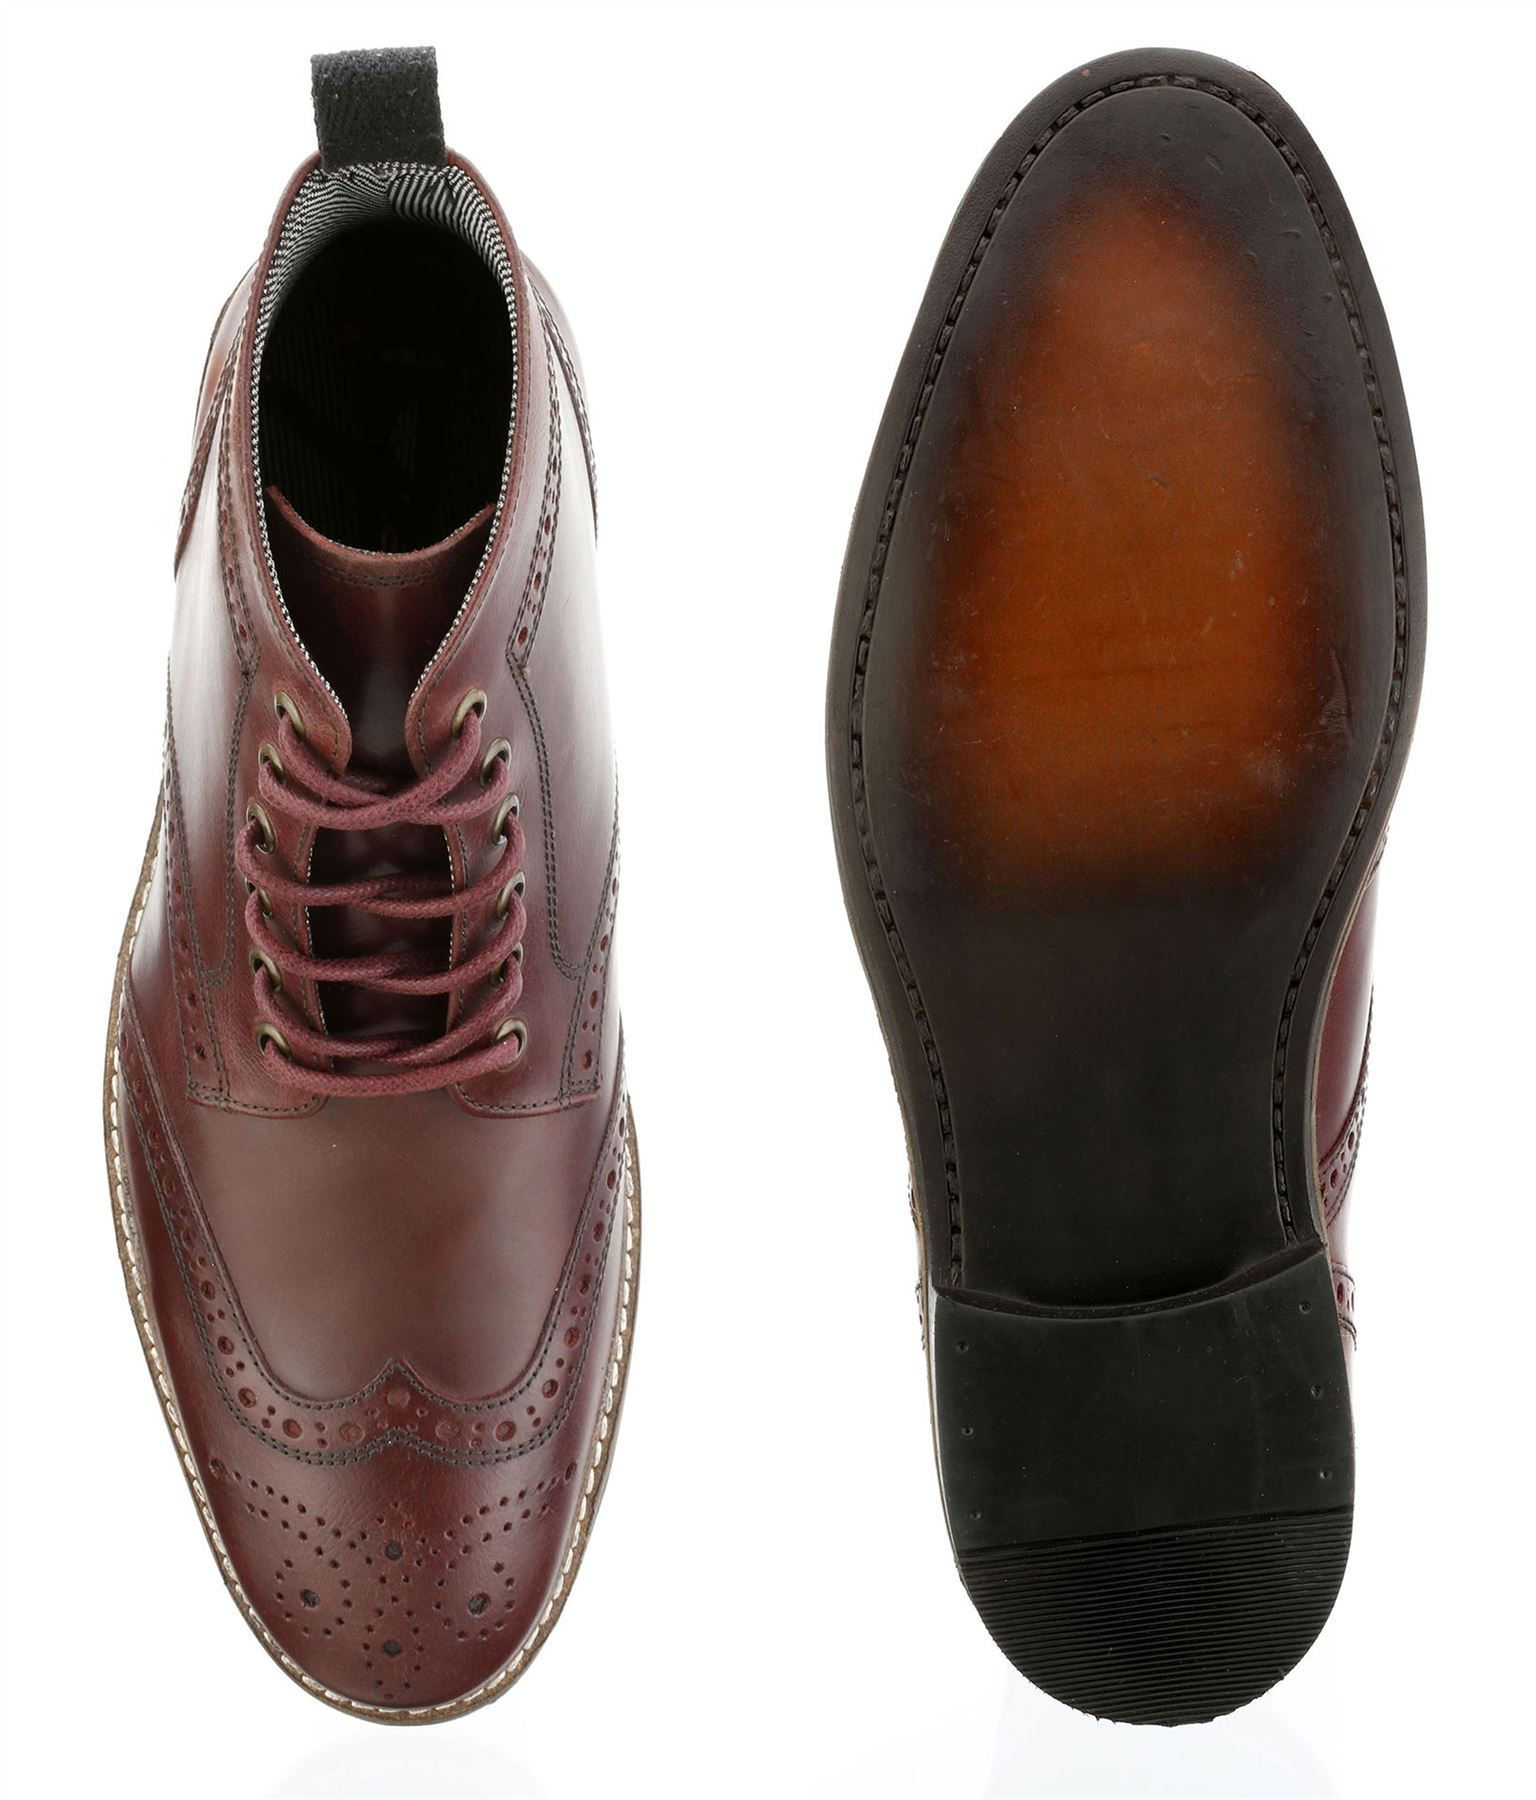 Red-Tape-Glaven-Brogue-Lace-Up-Leather-Mens-Boots